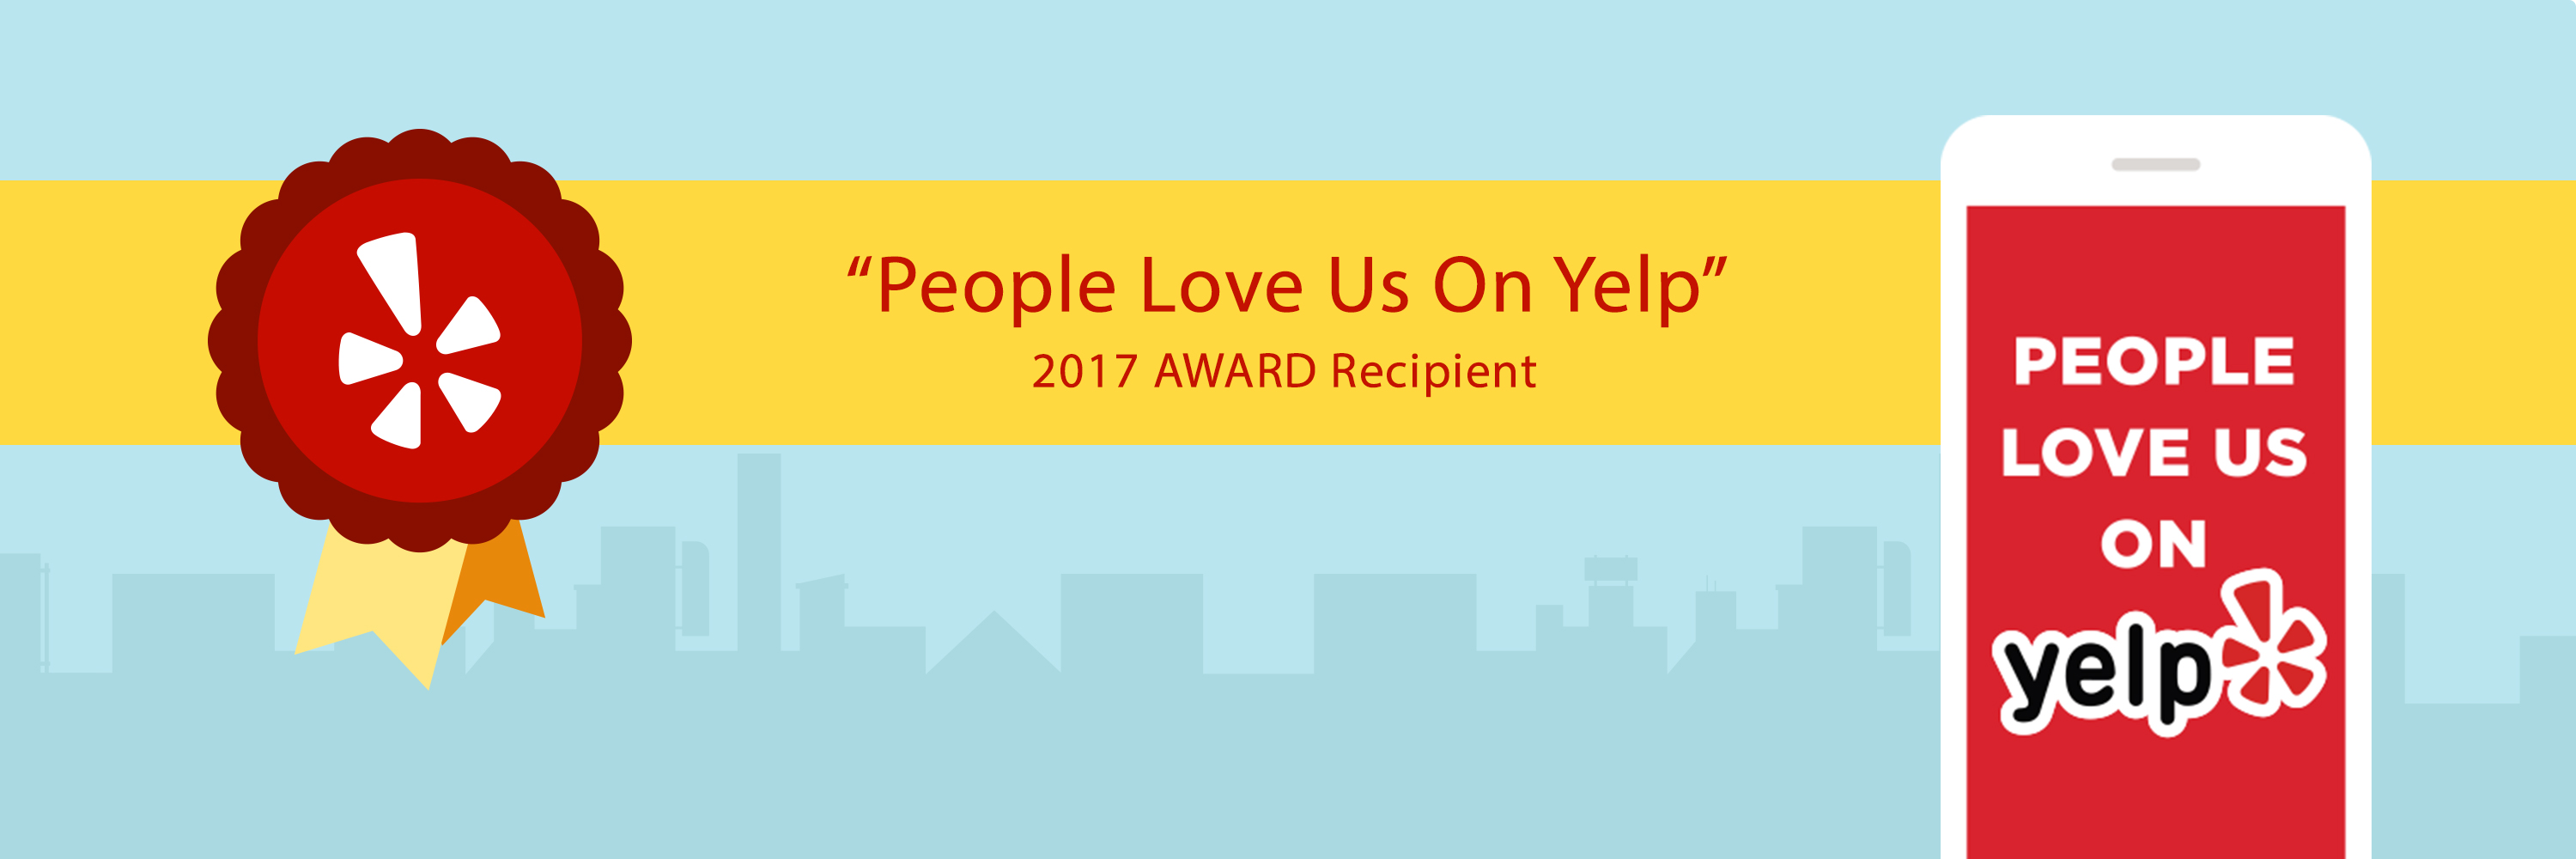 People Love Us On Yelp 2017 Header Image